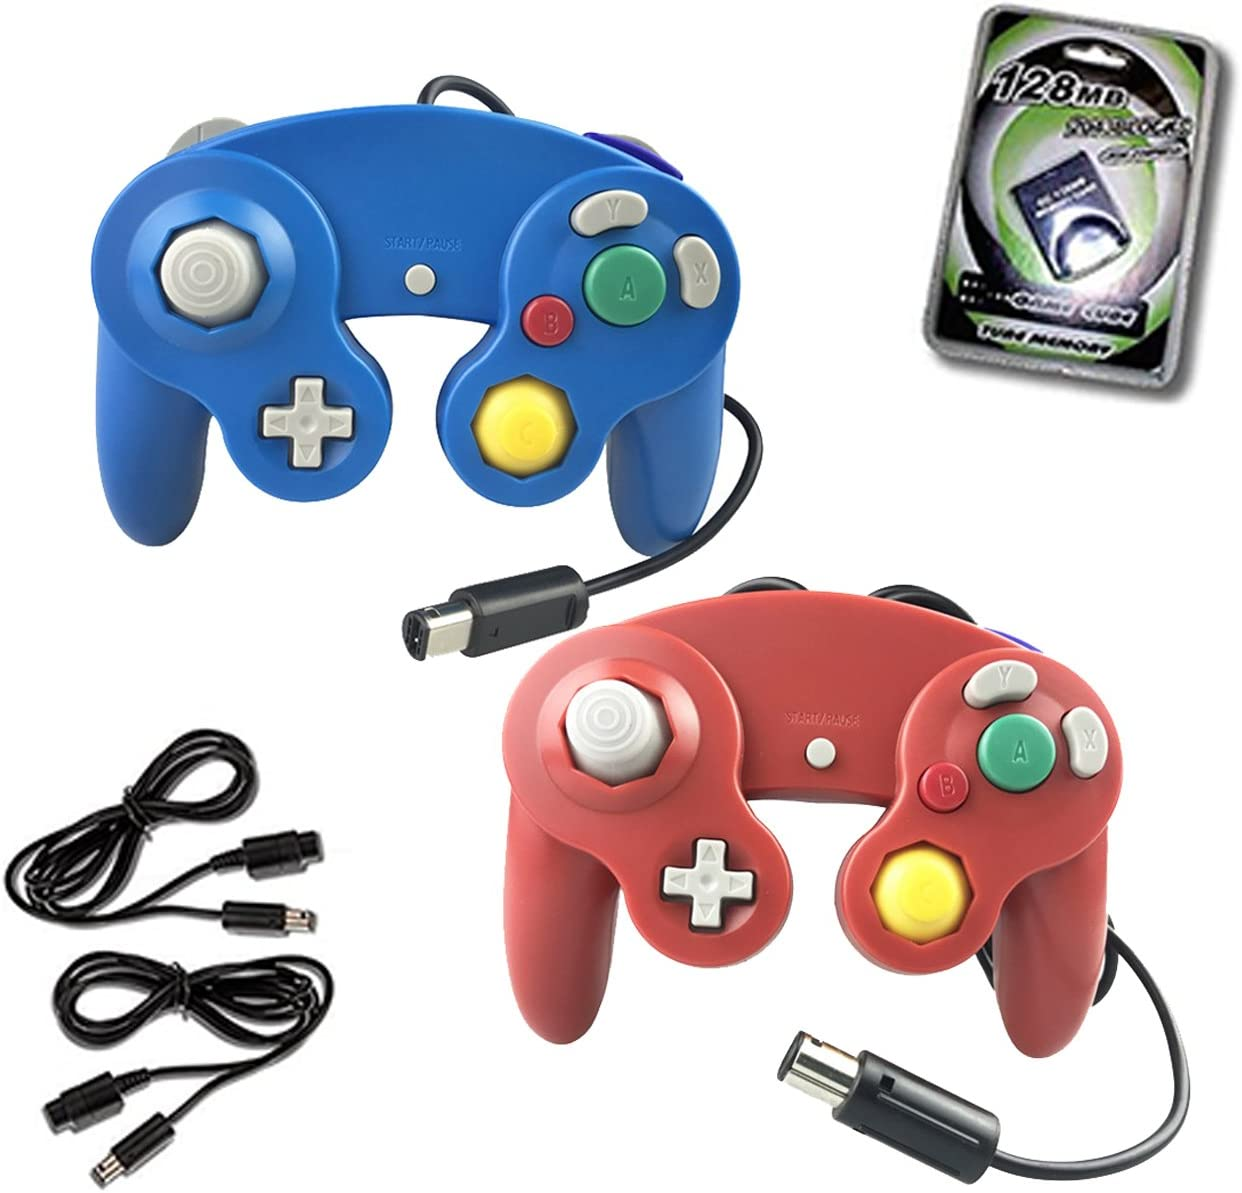 Crifeir Brand new 2 Pack Wired San Diego Mall Controller for Game NGC Ca Video with Wii